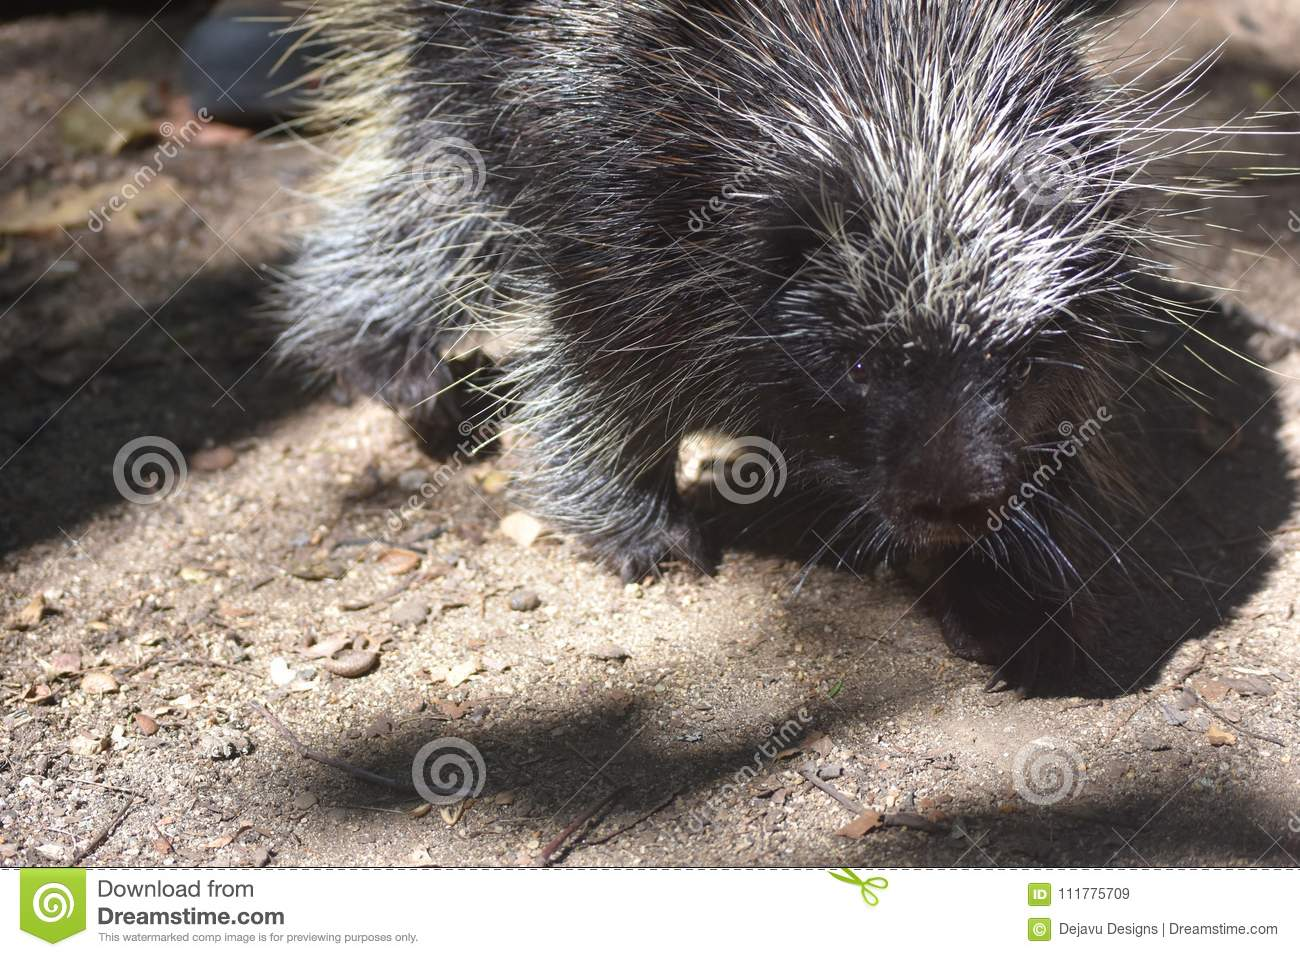 Cute porcupine looking up at the camera